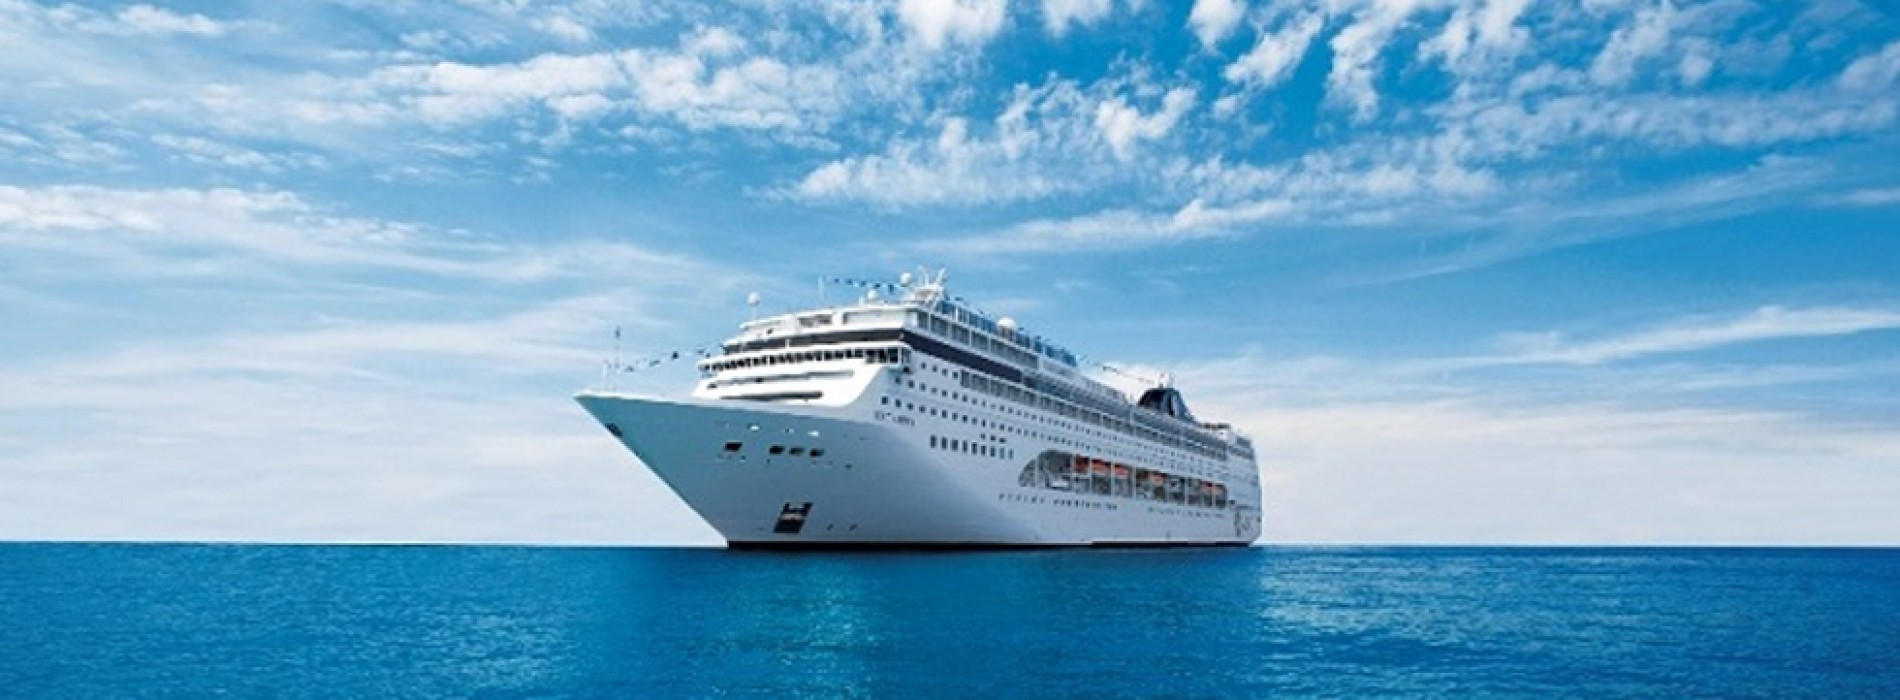 'Ease policies, improve infra to develop cruise tourism'